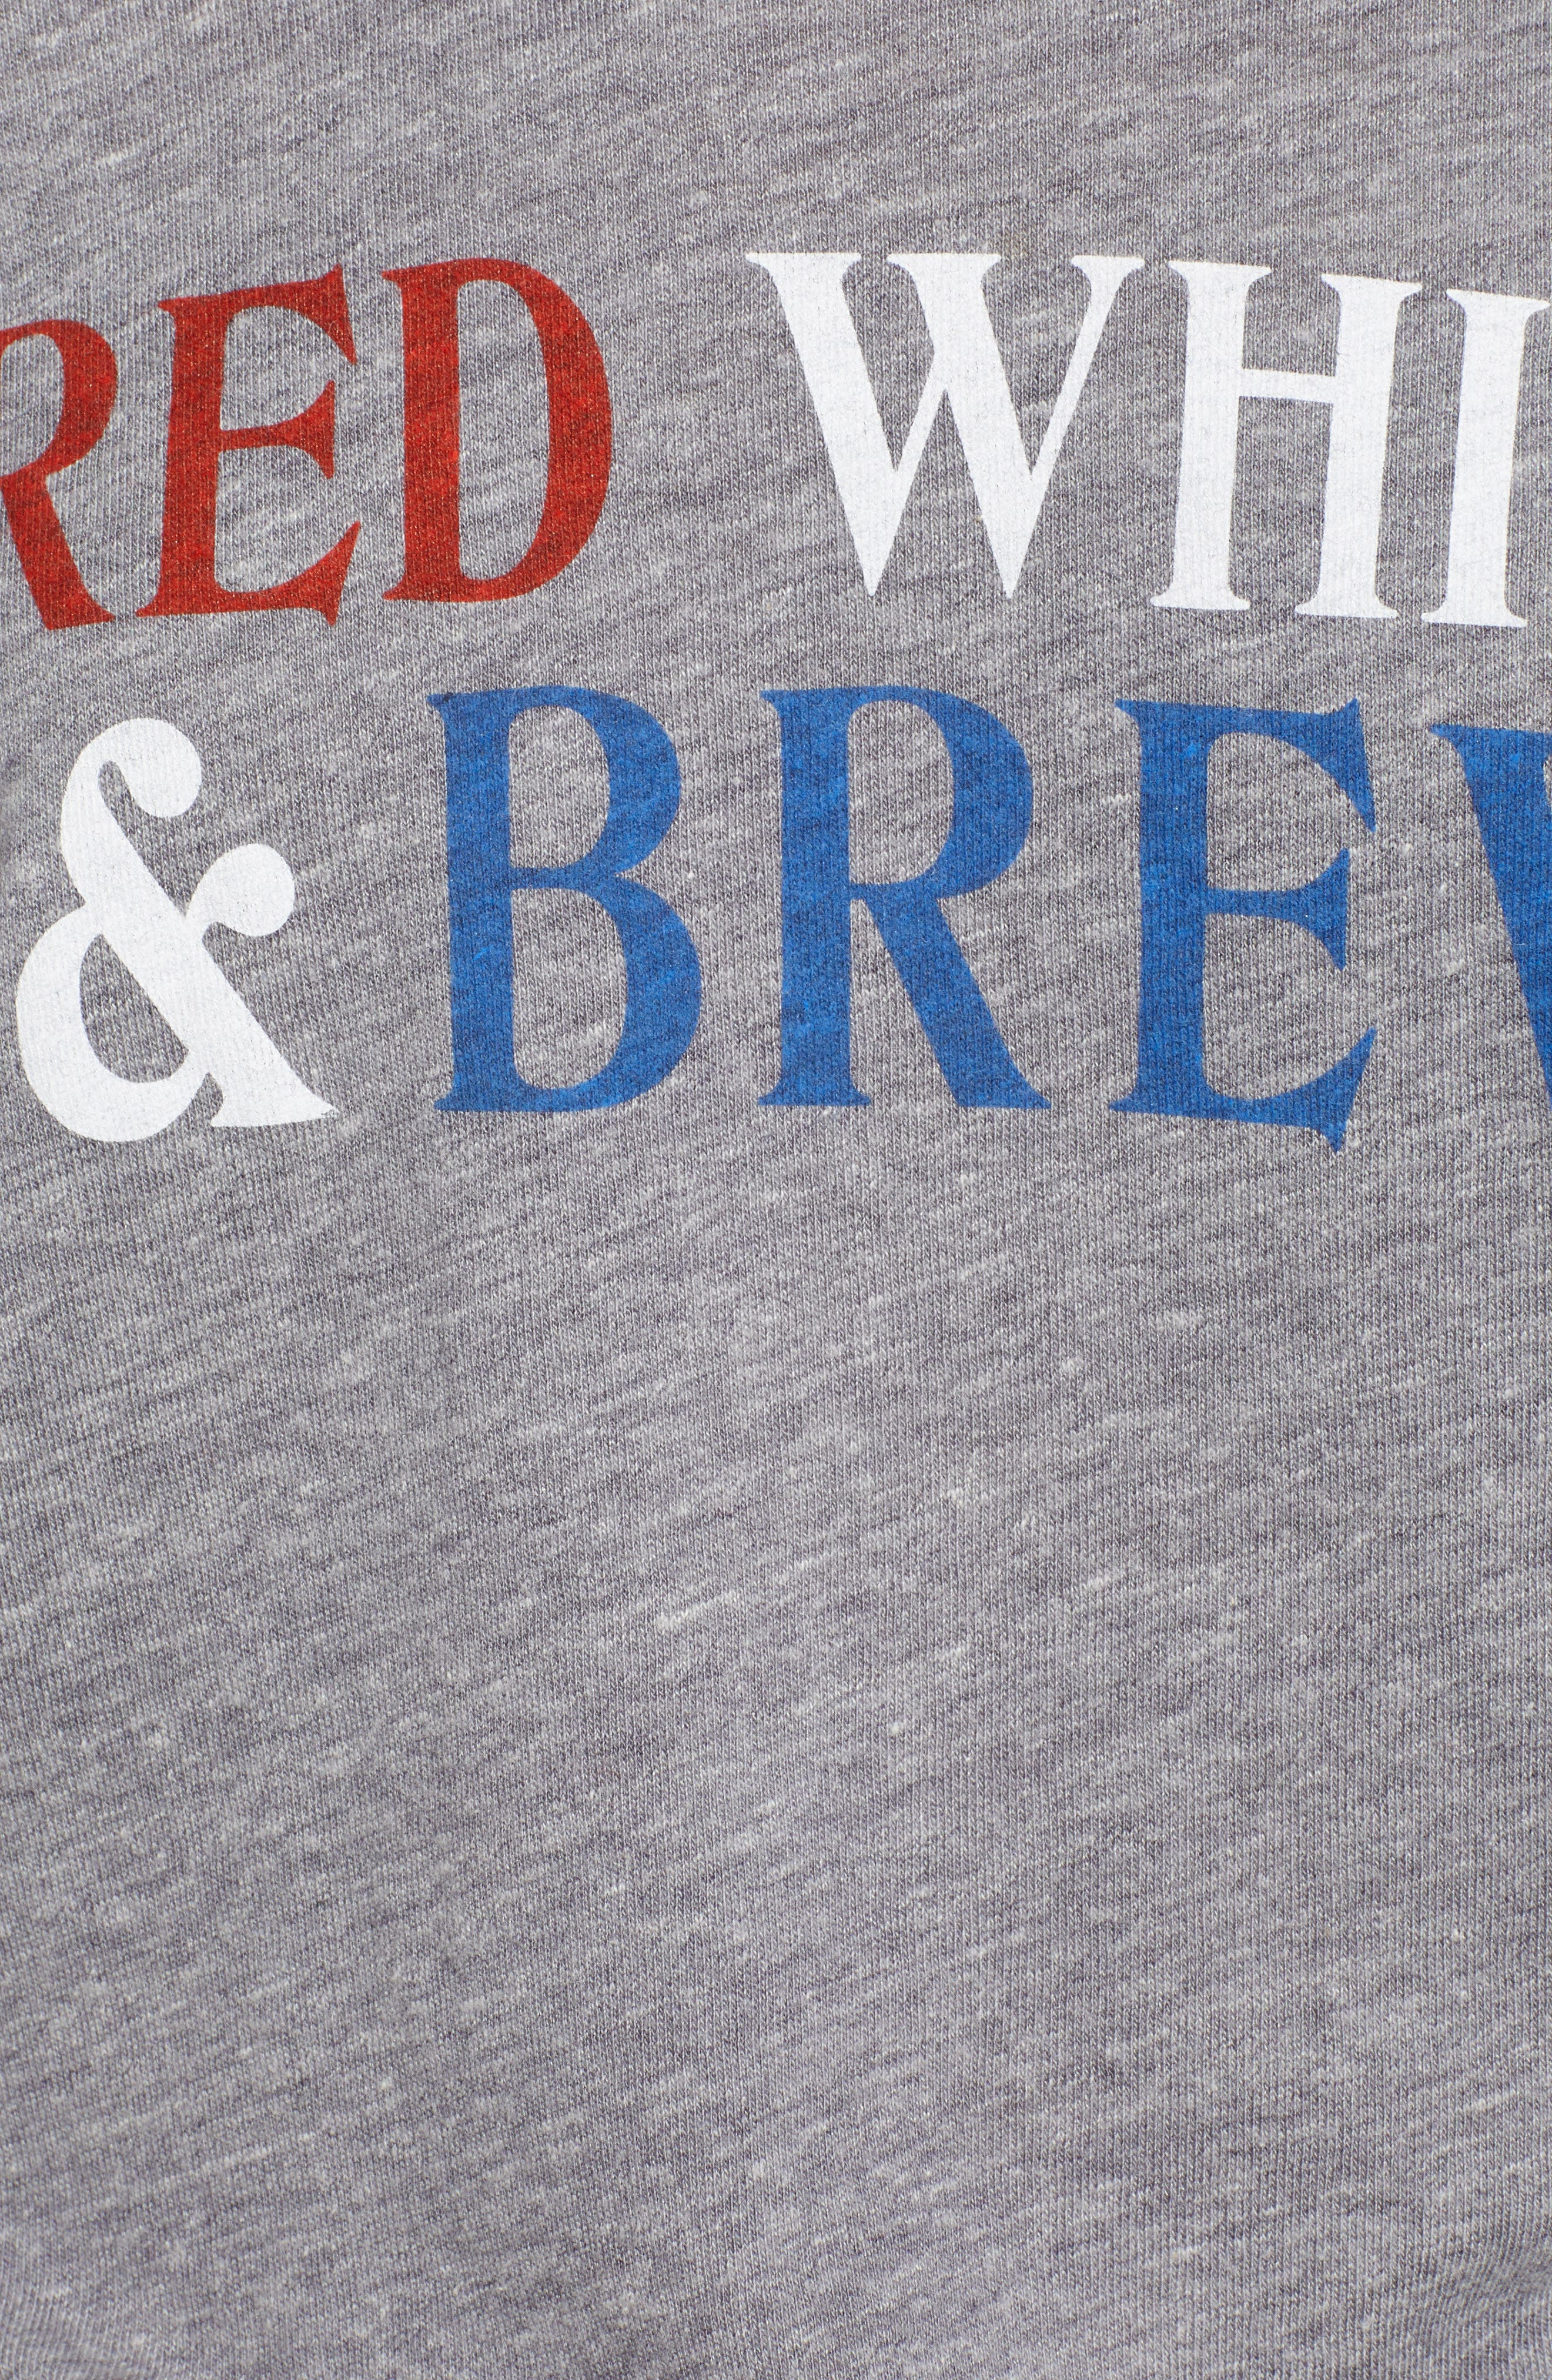 SUB_URBAN RIOT,                             Red, White & Brew Graphic Tee,                             Alternate thumbnail 5, color,                             020